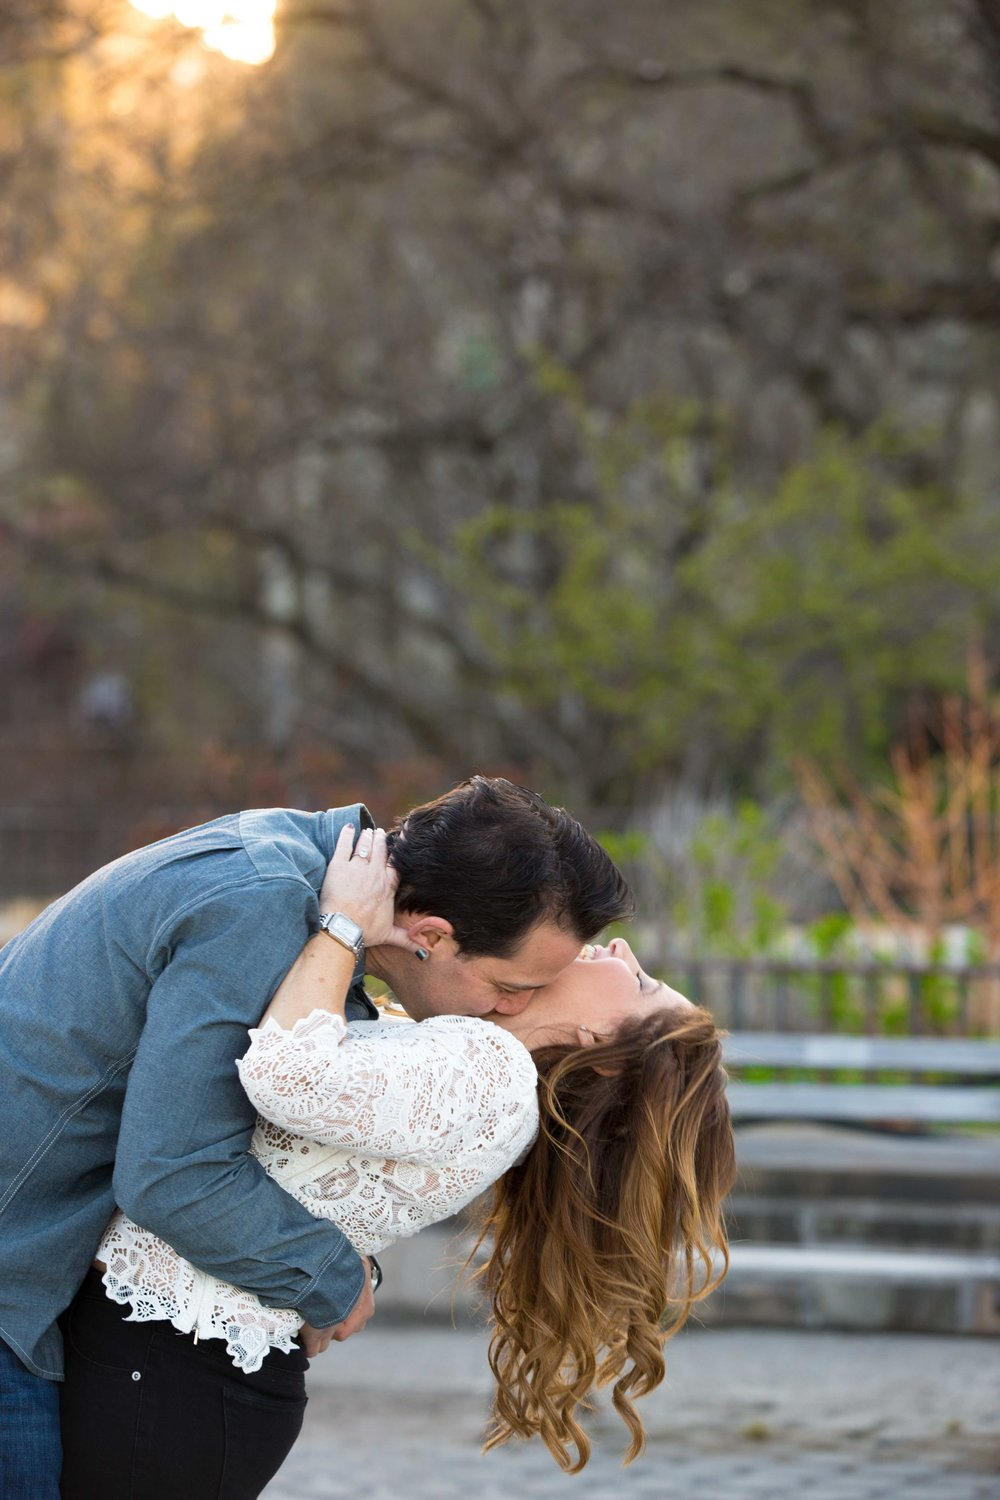 NYC Carl Schurz Park Engagement Photo Shoot Session 3.jpg